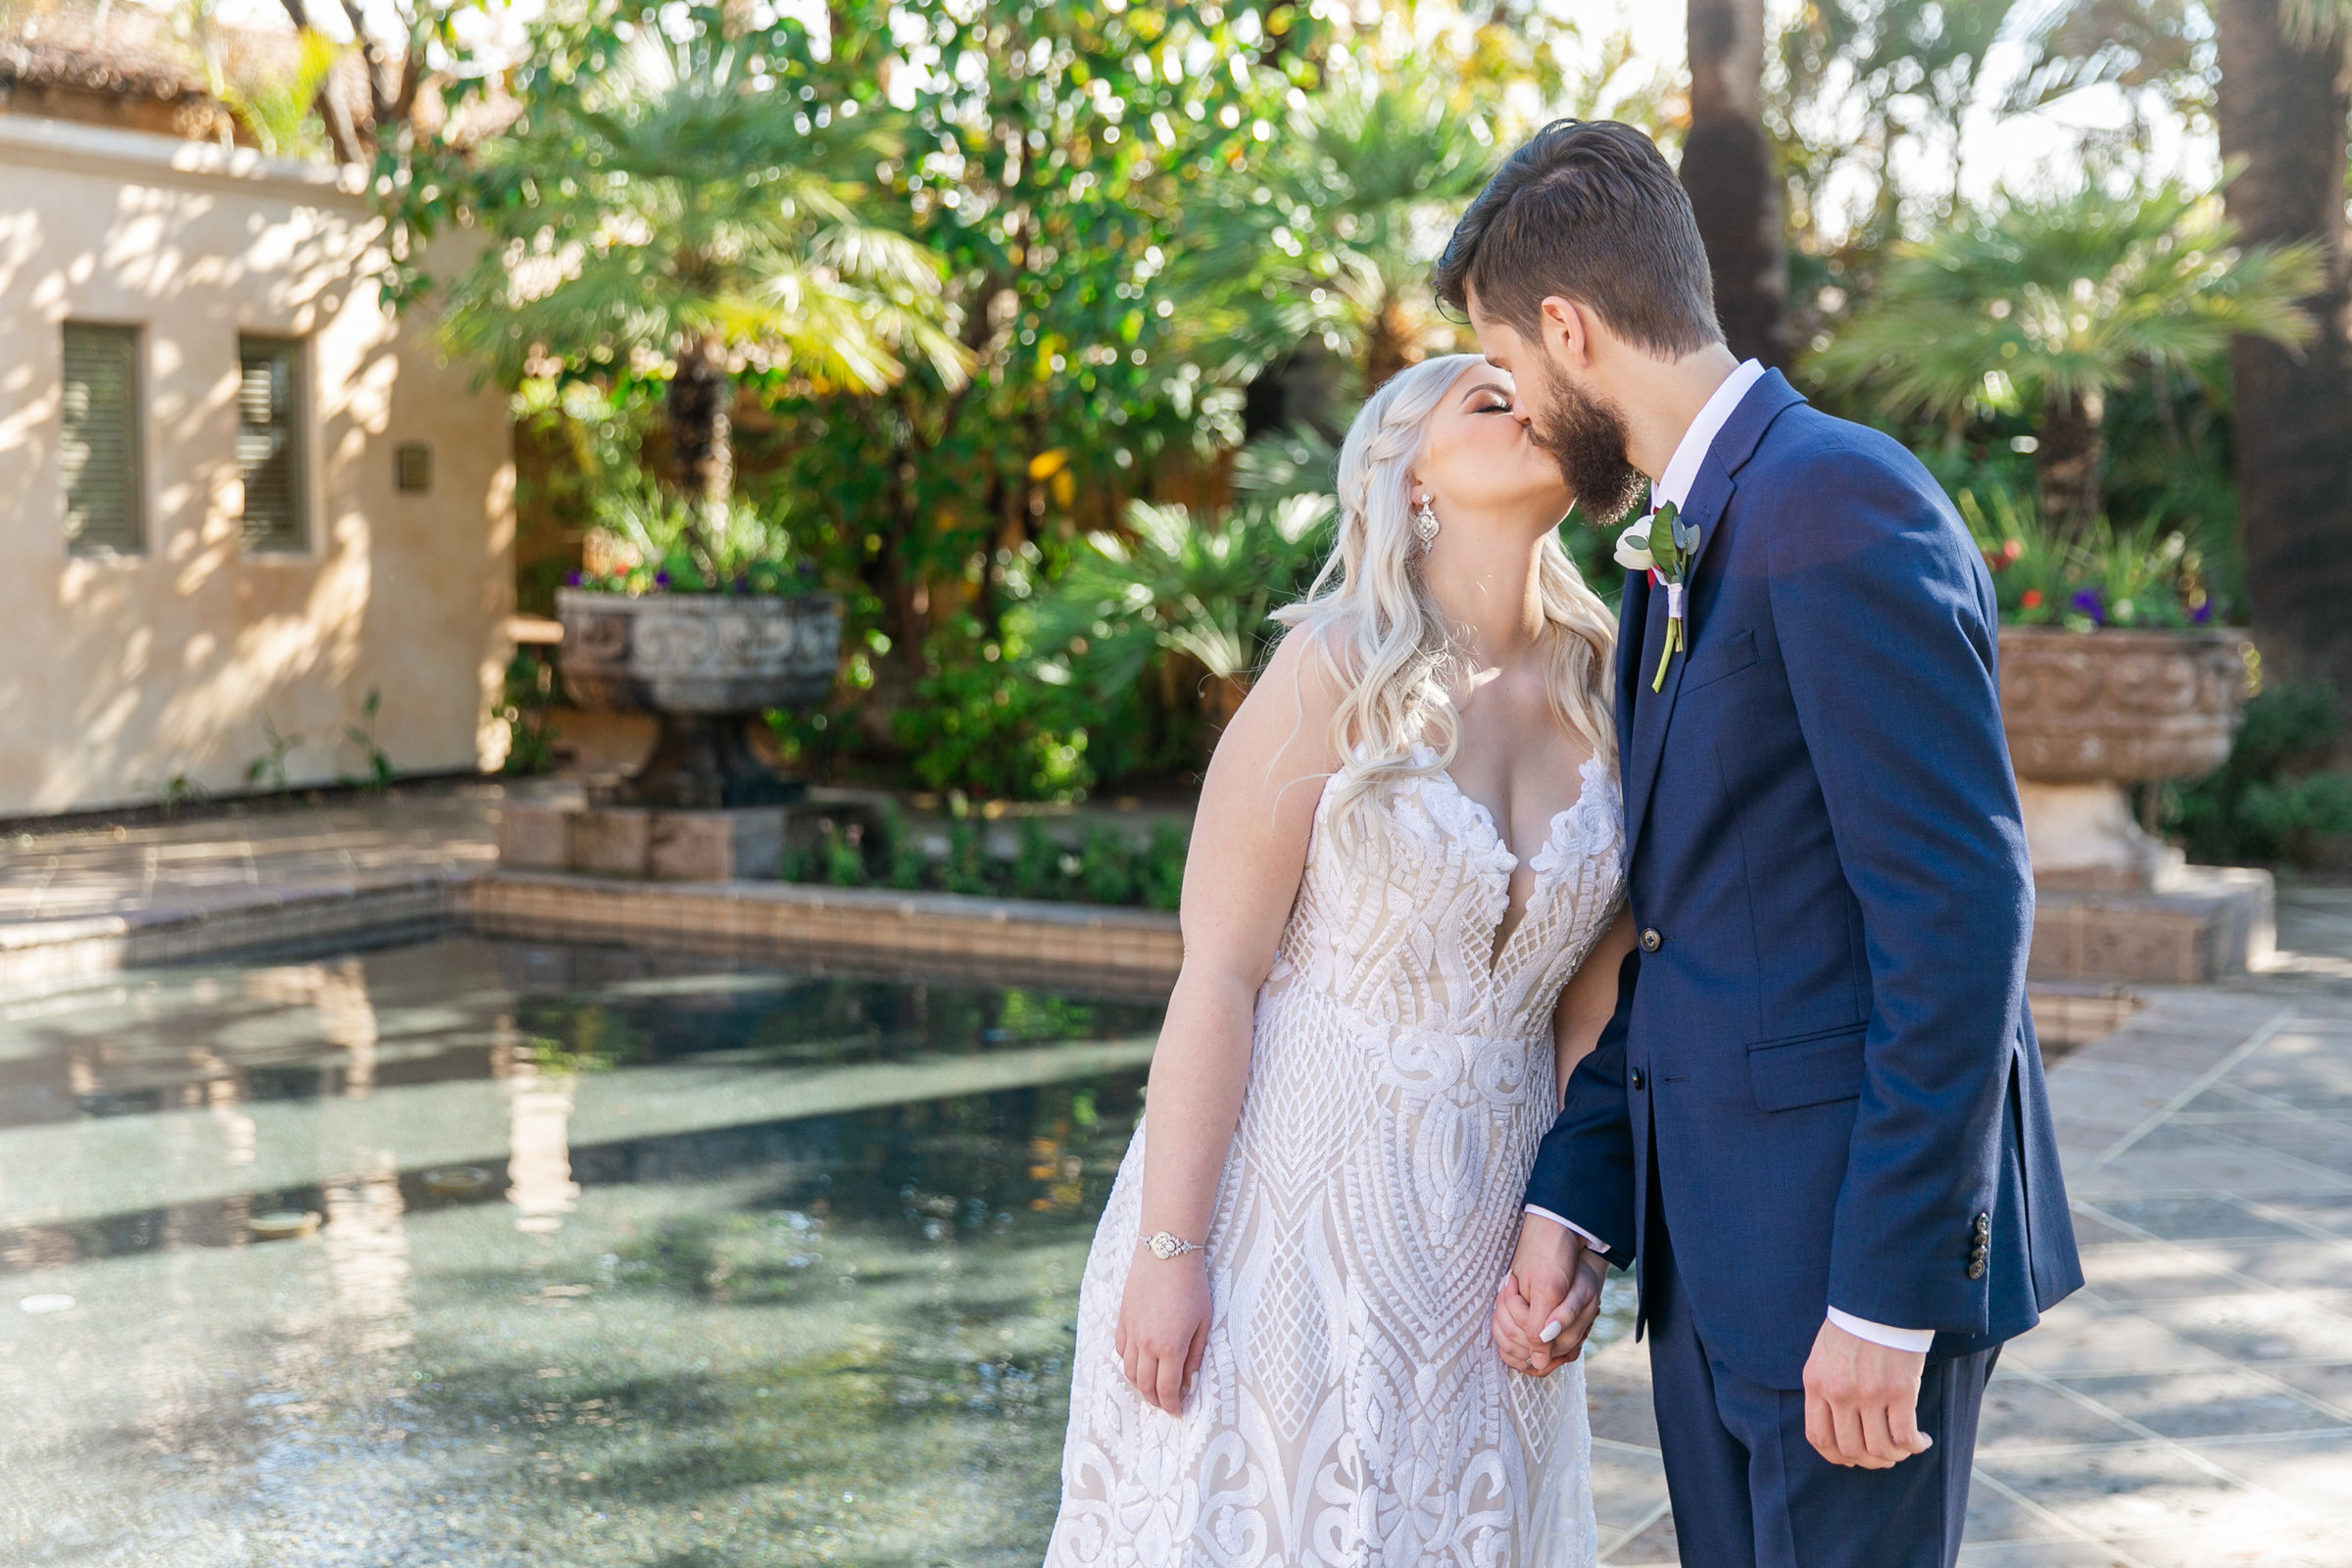 Karlie Colleen Photography - The Royal Palms Wedding - Some Like It Classic - Alex & Sam-141